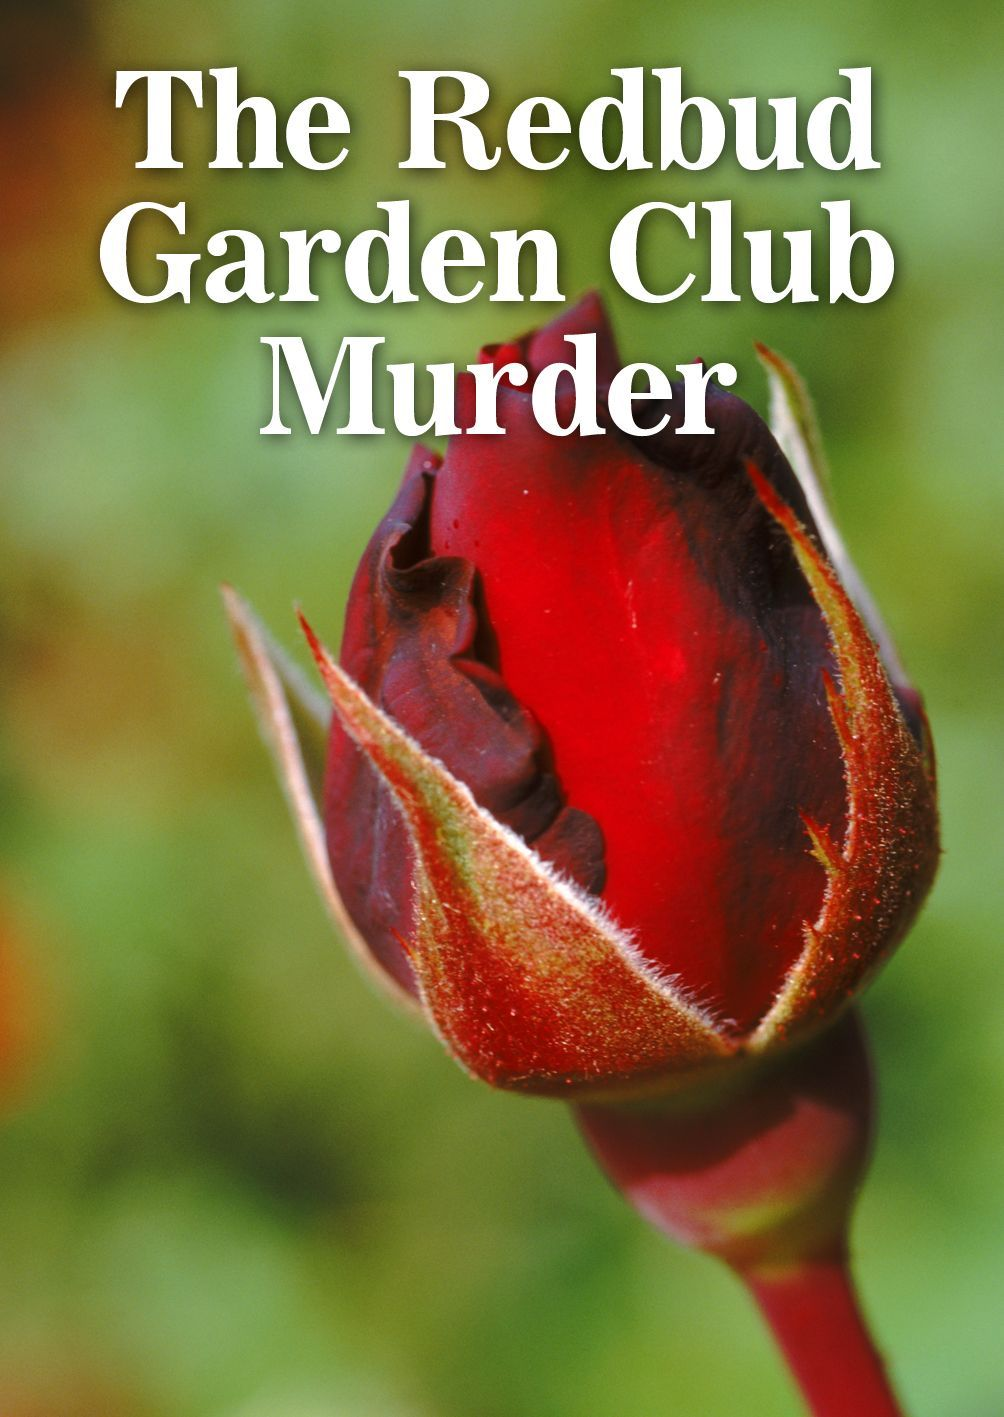 The Redbud Garden Club Murder